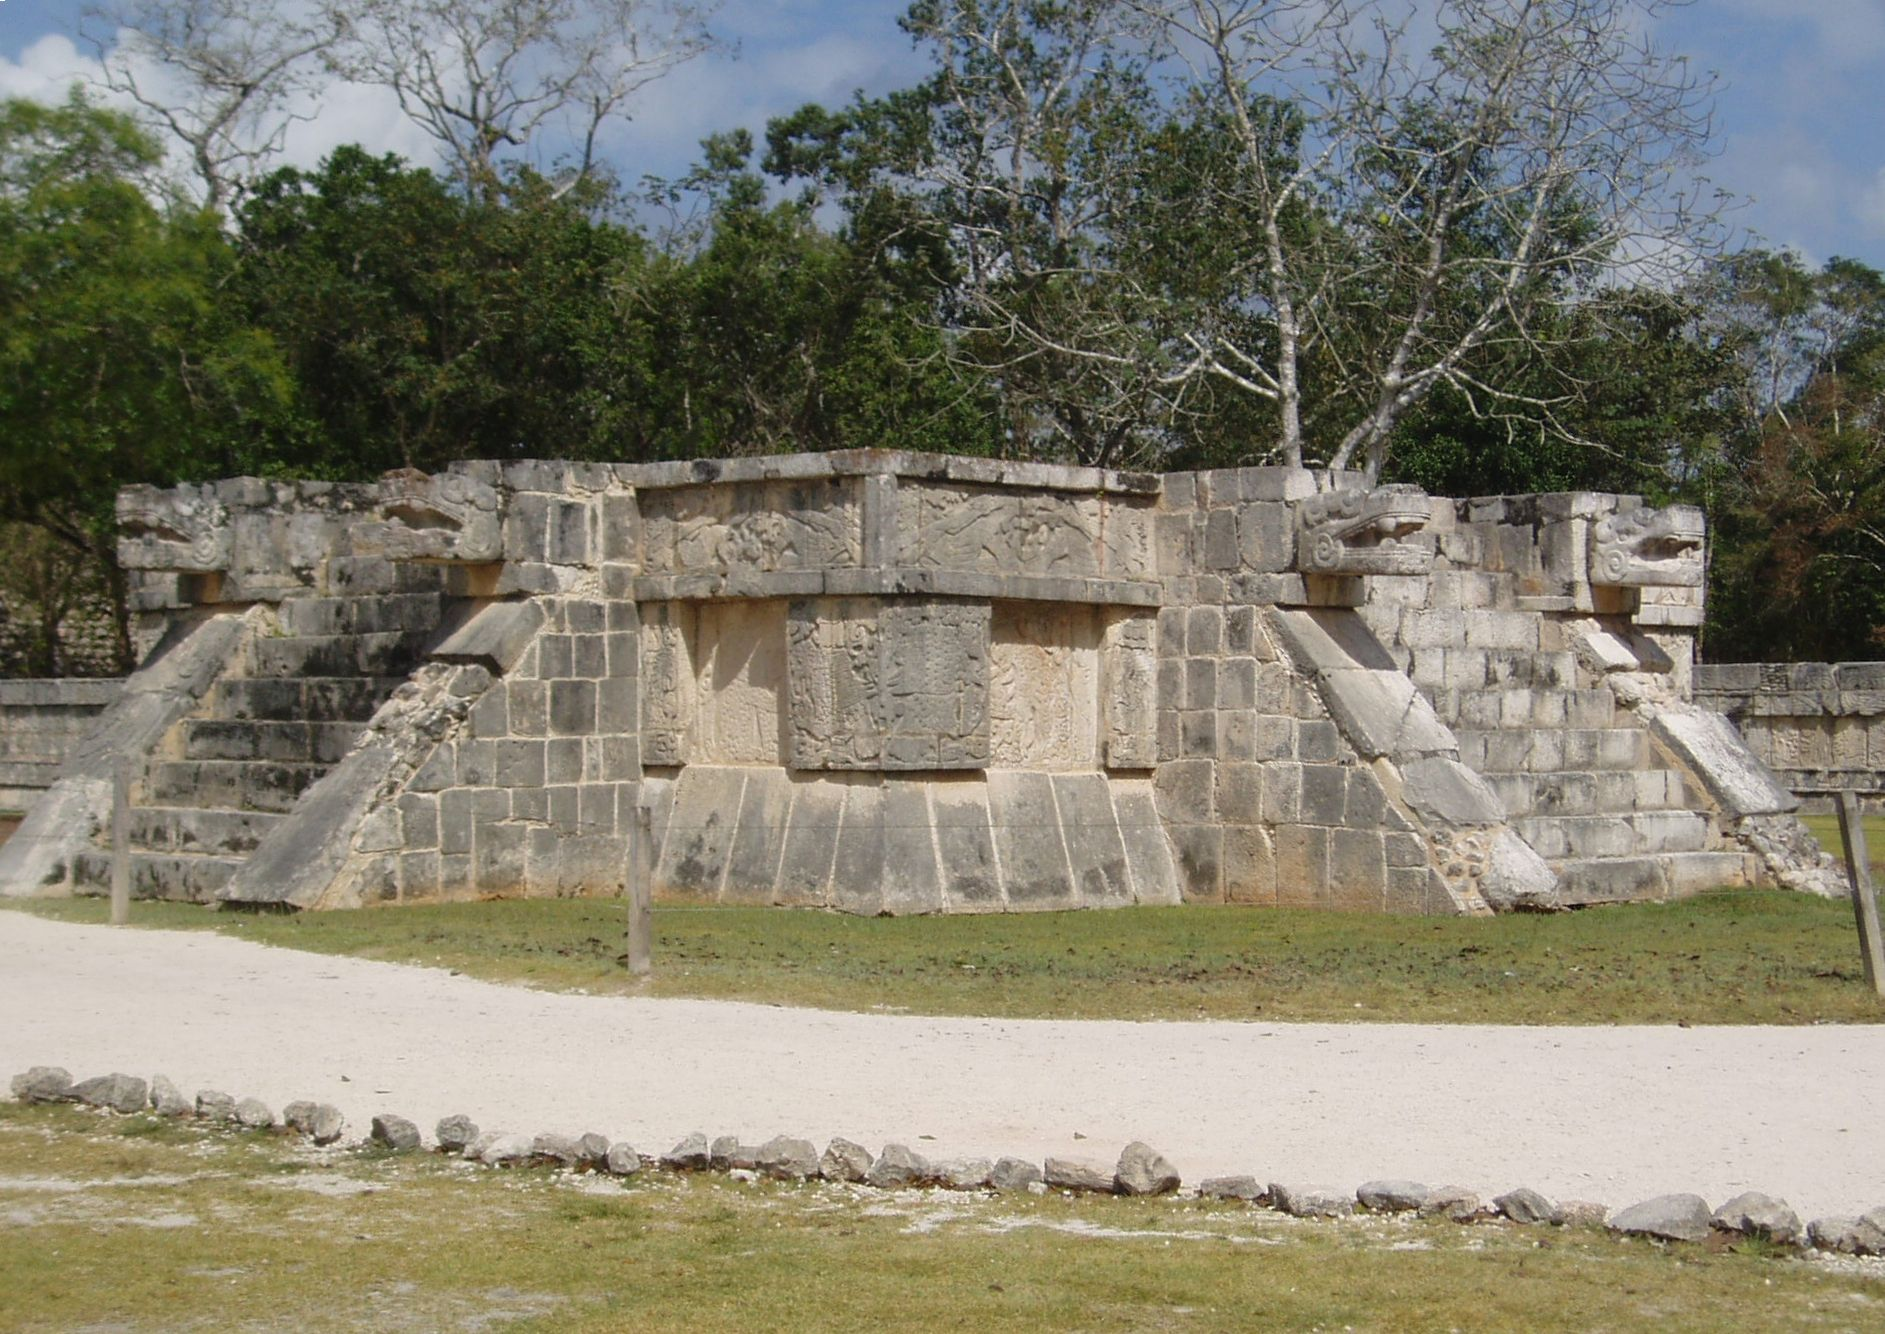 Many tourists visit Chichen Itza as a day trip, especially from Cancun